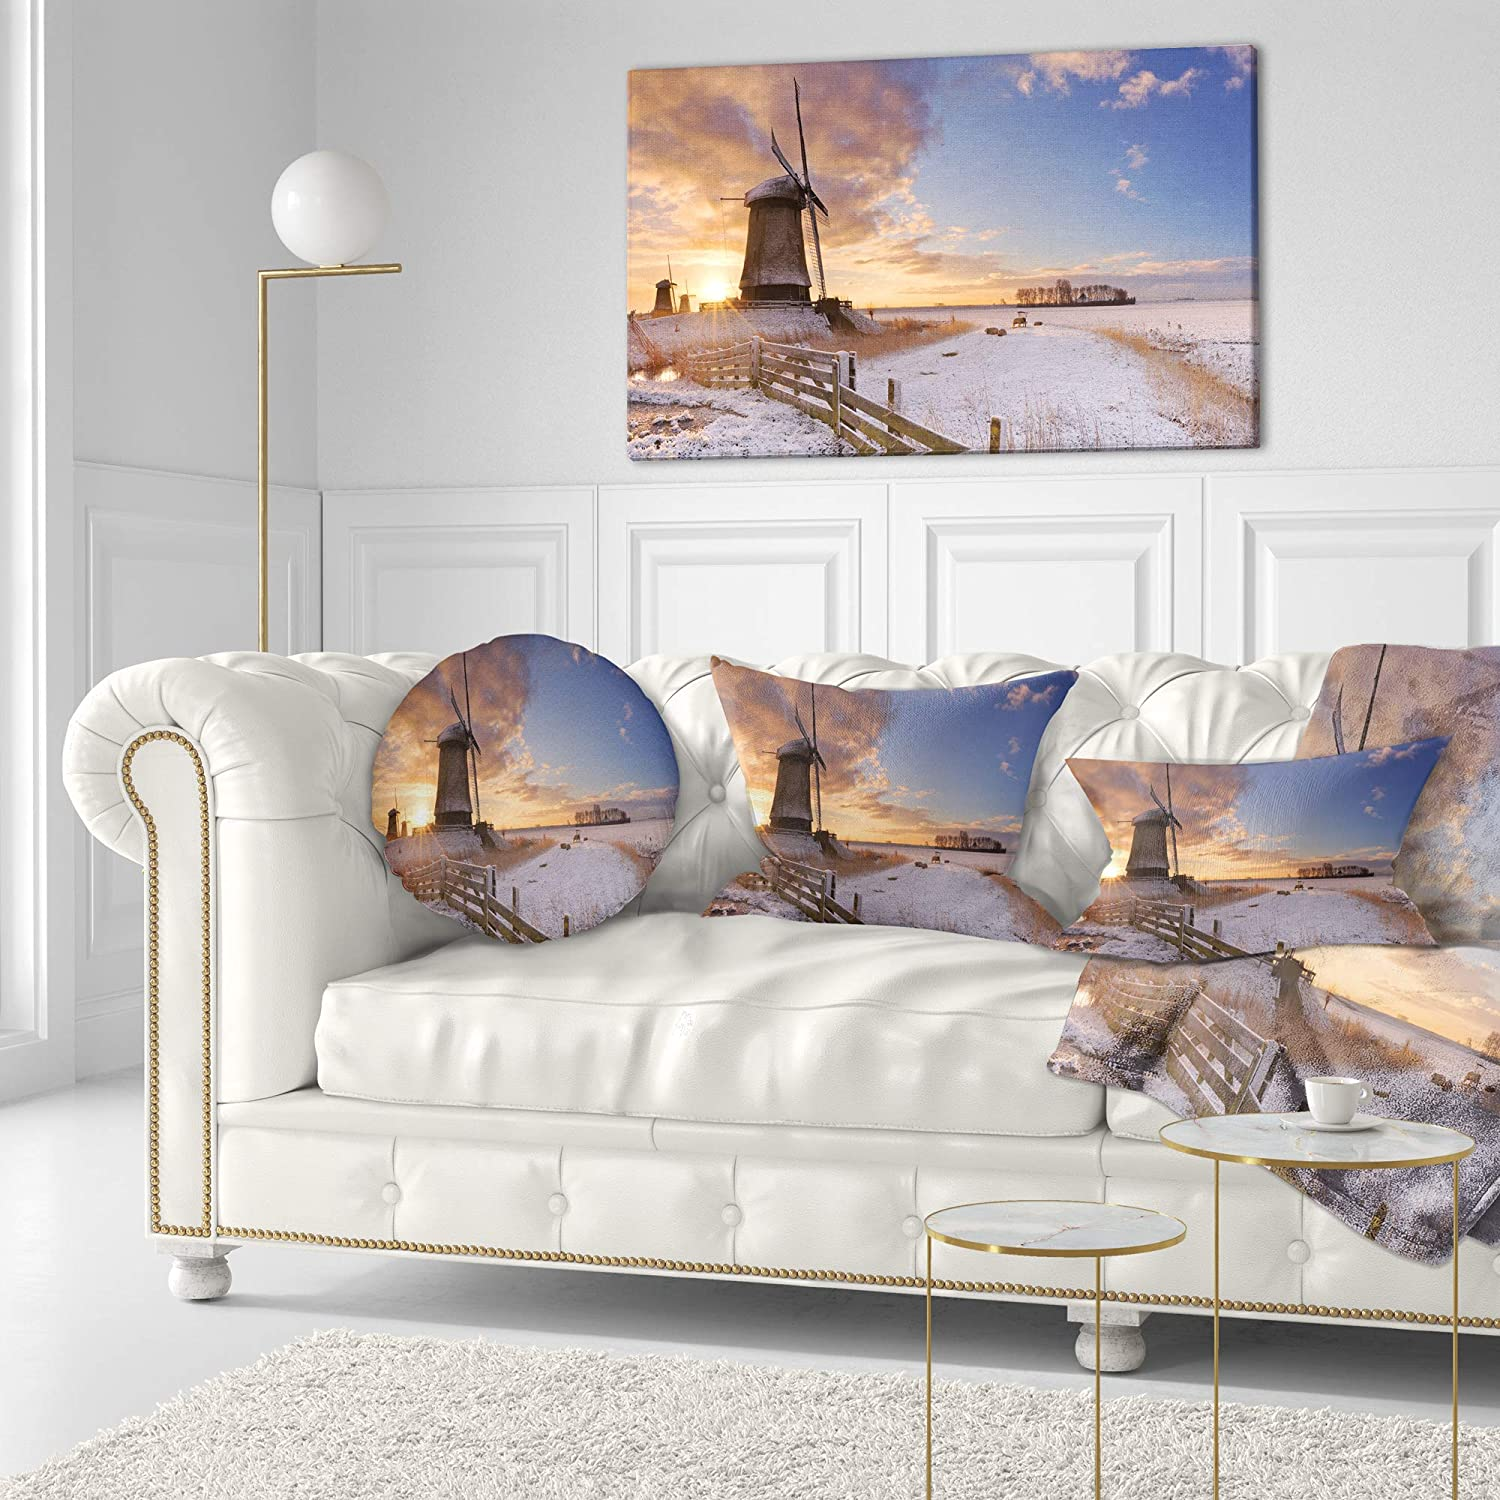 Sofa Throw Pillow 20 Inches Designart CU15946-20-20-C Dutch Windmills at Sunrise Abstract Round Cushion Cover for Living Room Insert Printed on Both Side